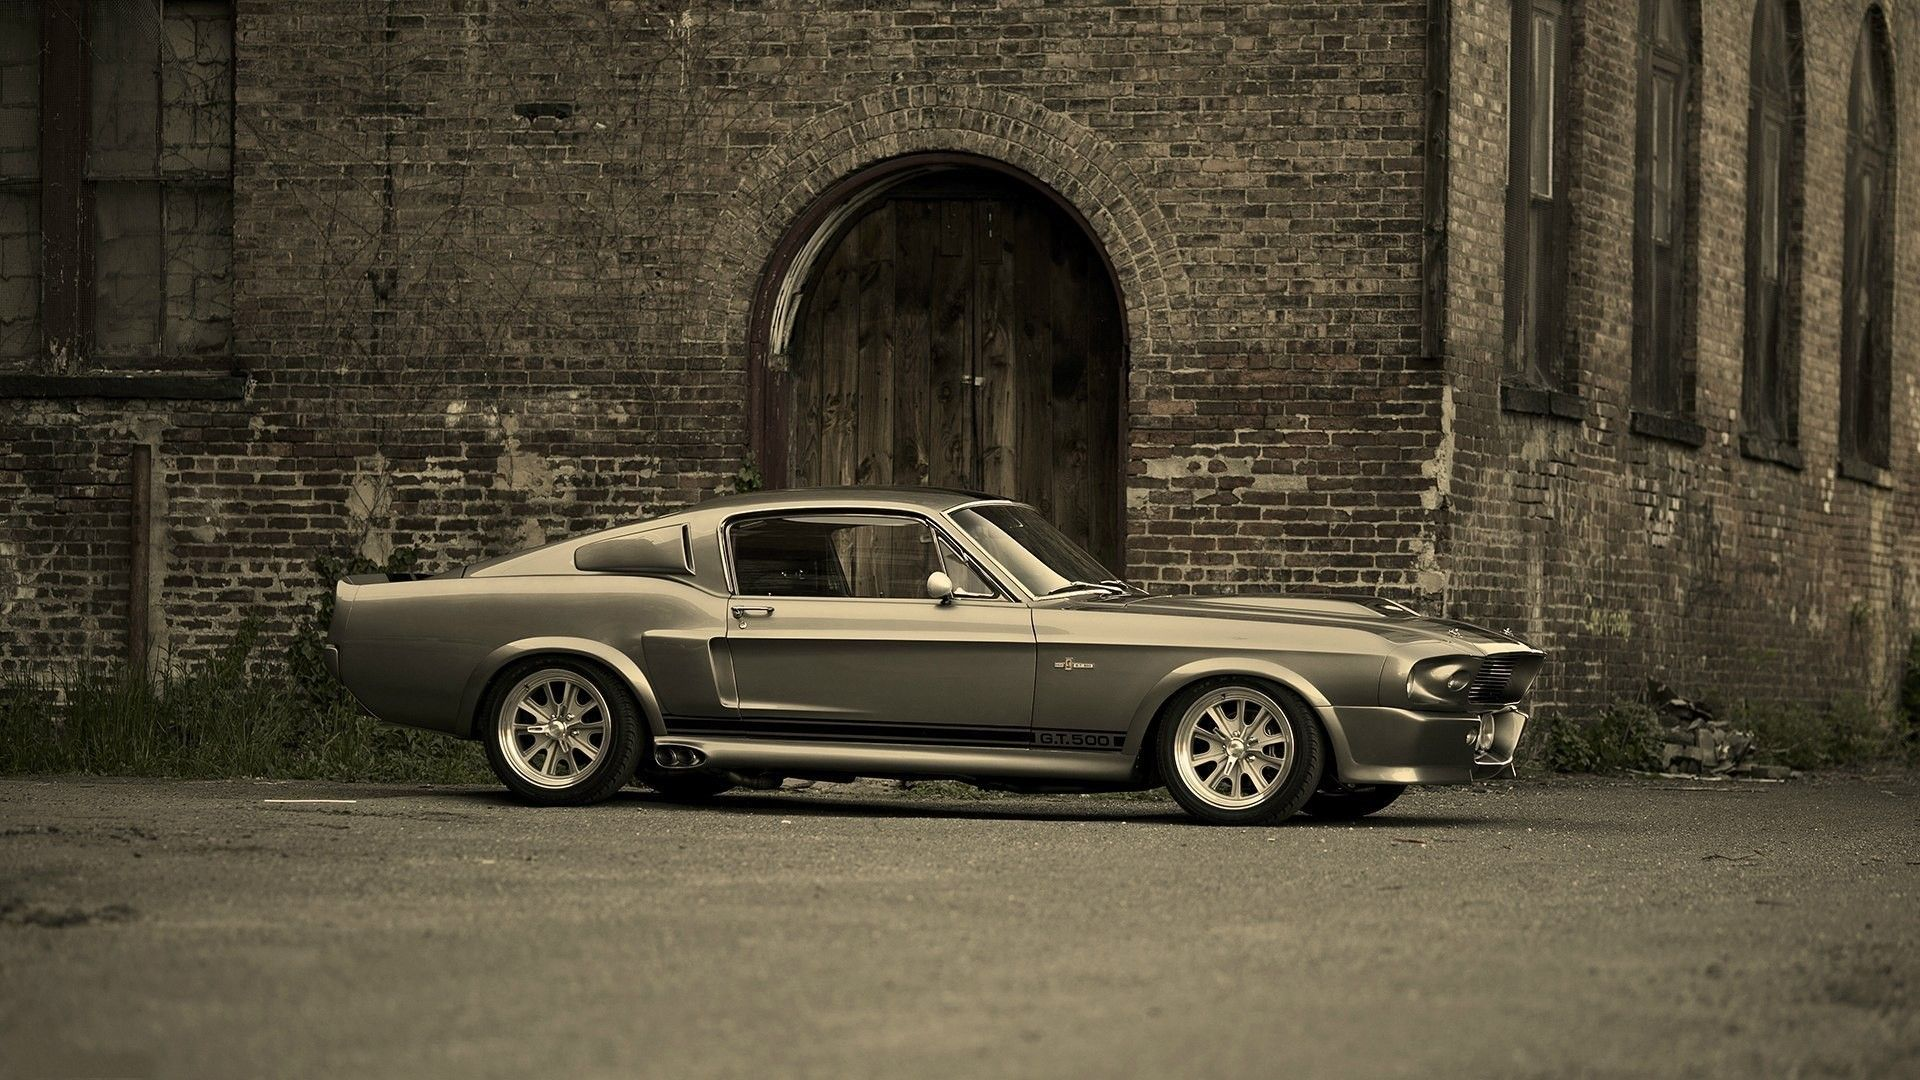 Sexxxy With Images Ford Mustang Shelby Gt500 Ford Mustang